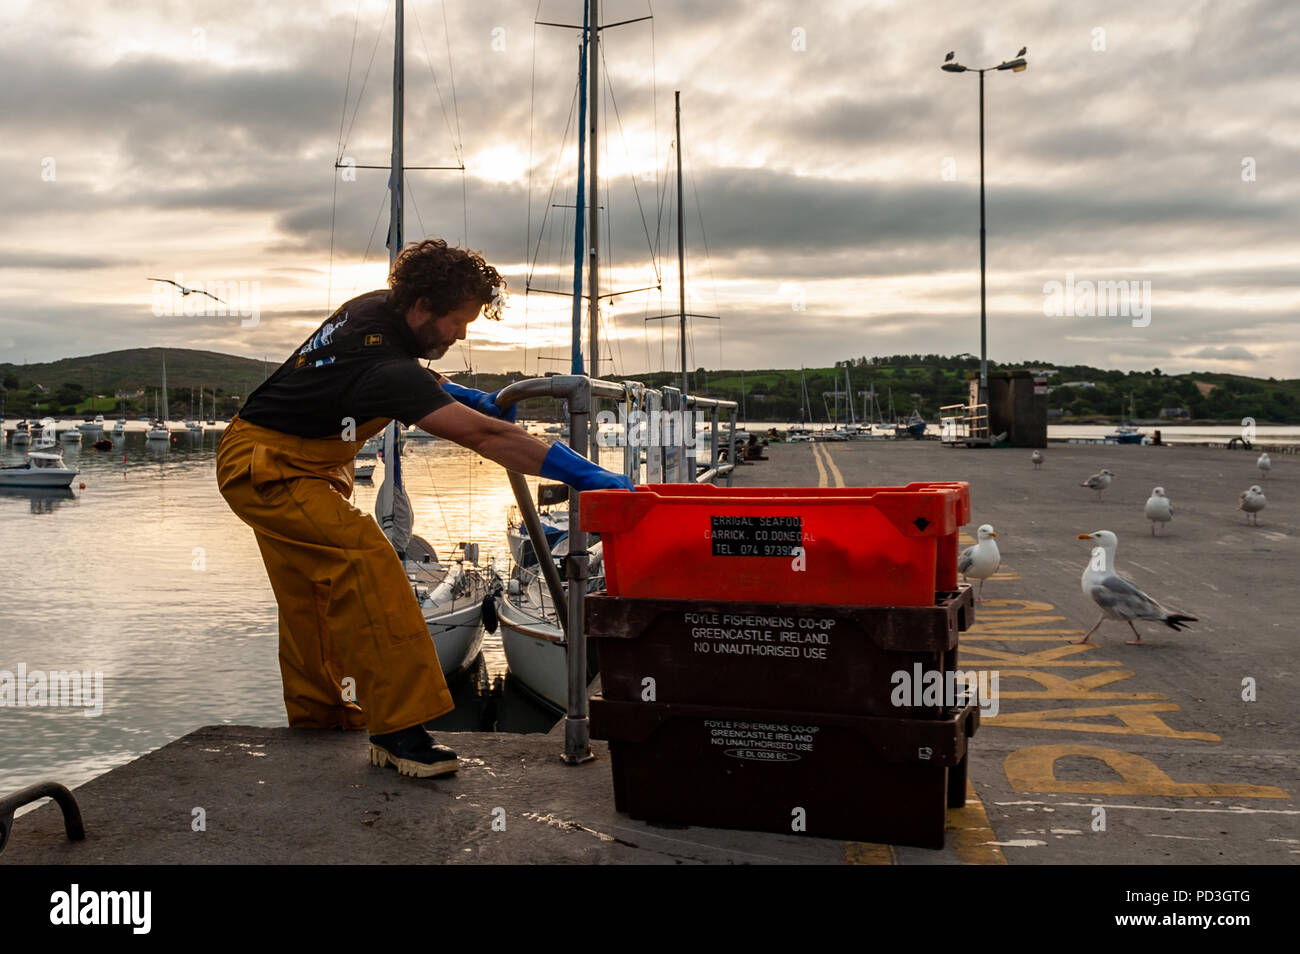 Schull, West Cork, Ireland. 7th Aug, 2018. A local fisherman moves bait from the pier to his boat in preparation for a day's crab fishing.  The day will be dry and cloudy with highs of 16° Celsius. Credit: Andy Gibson/Alamy Live News. Stock Photo